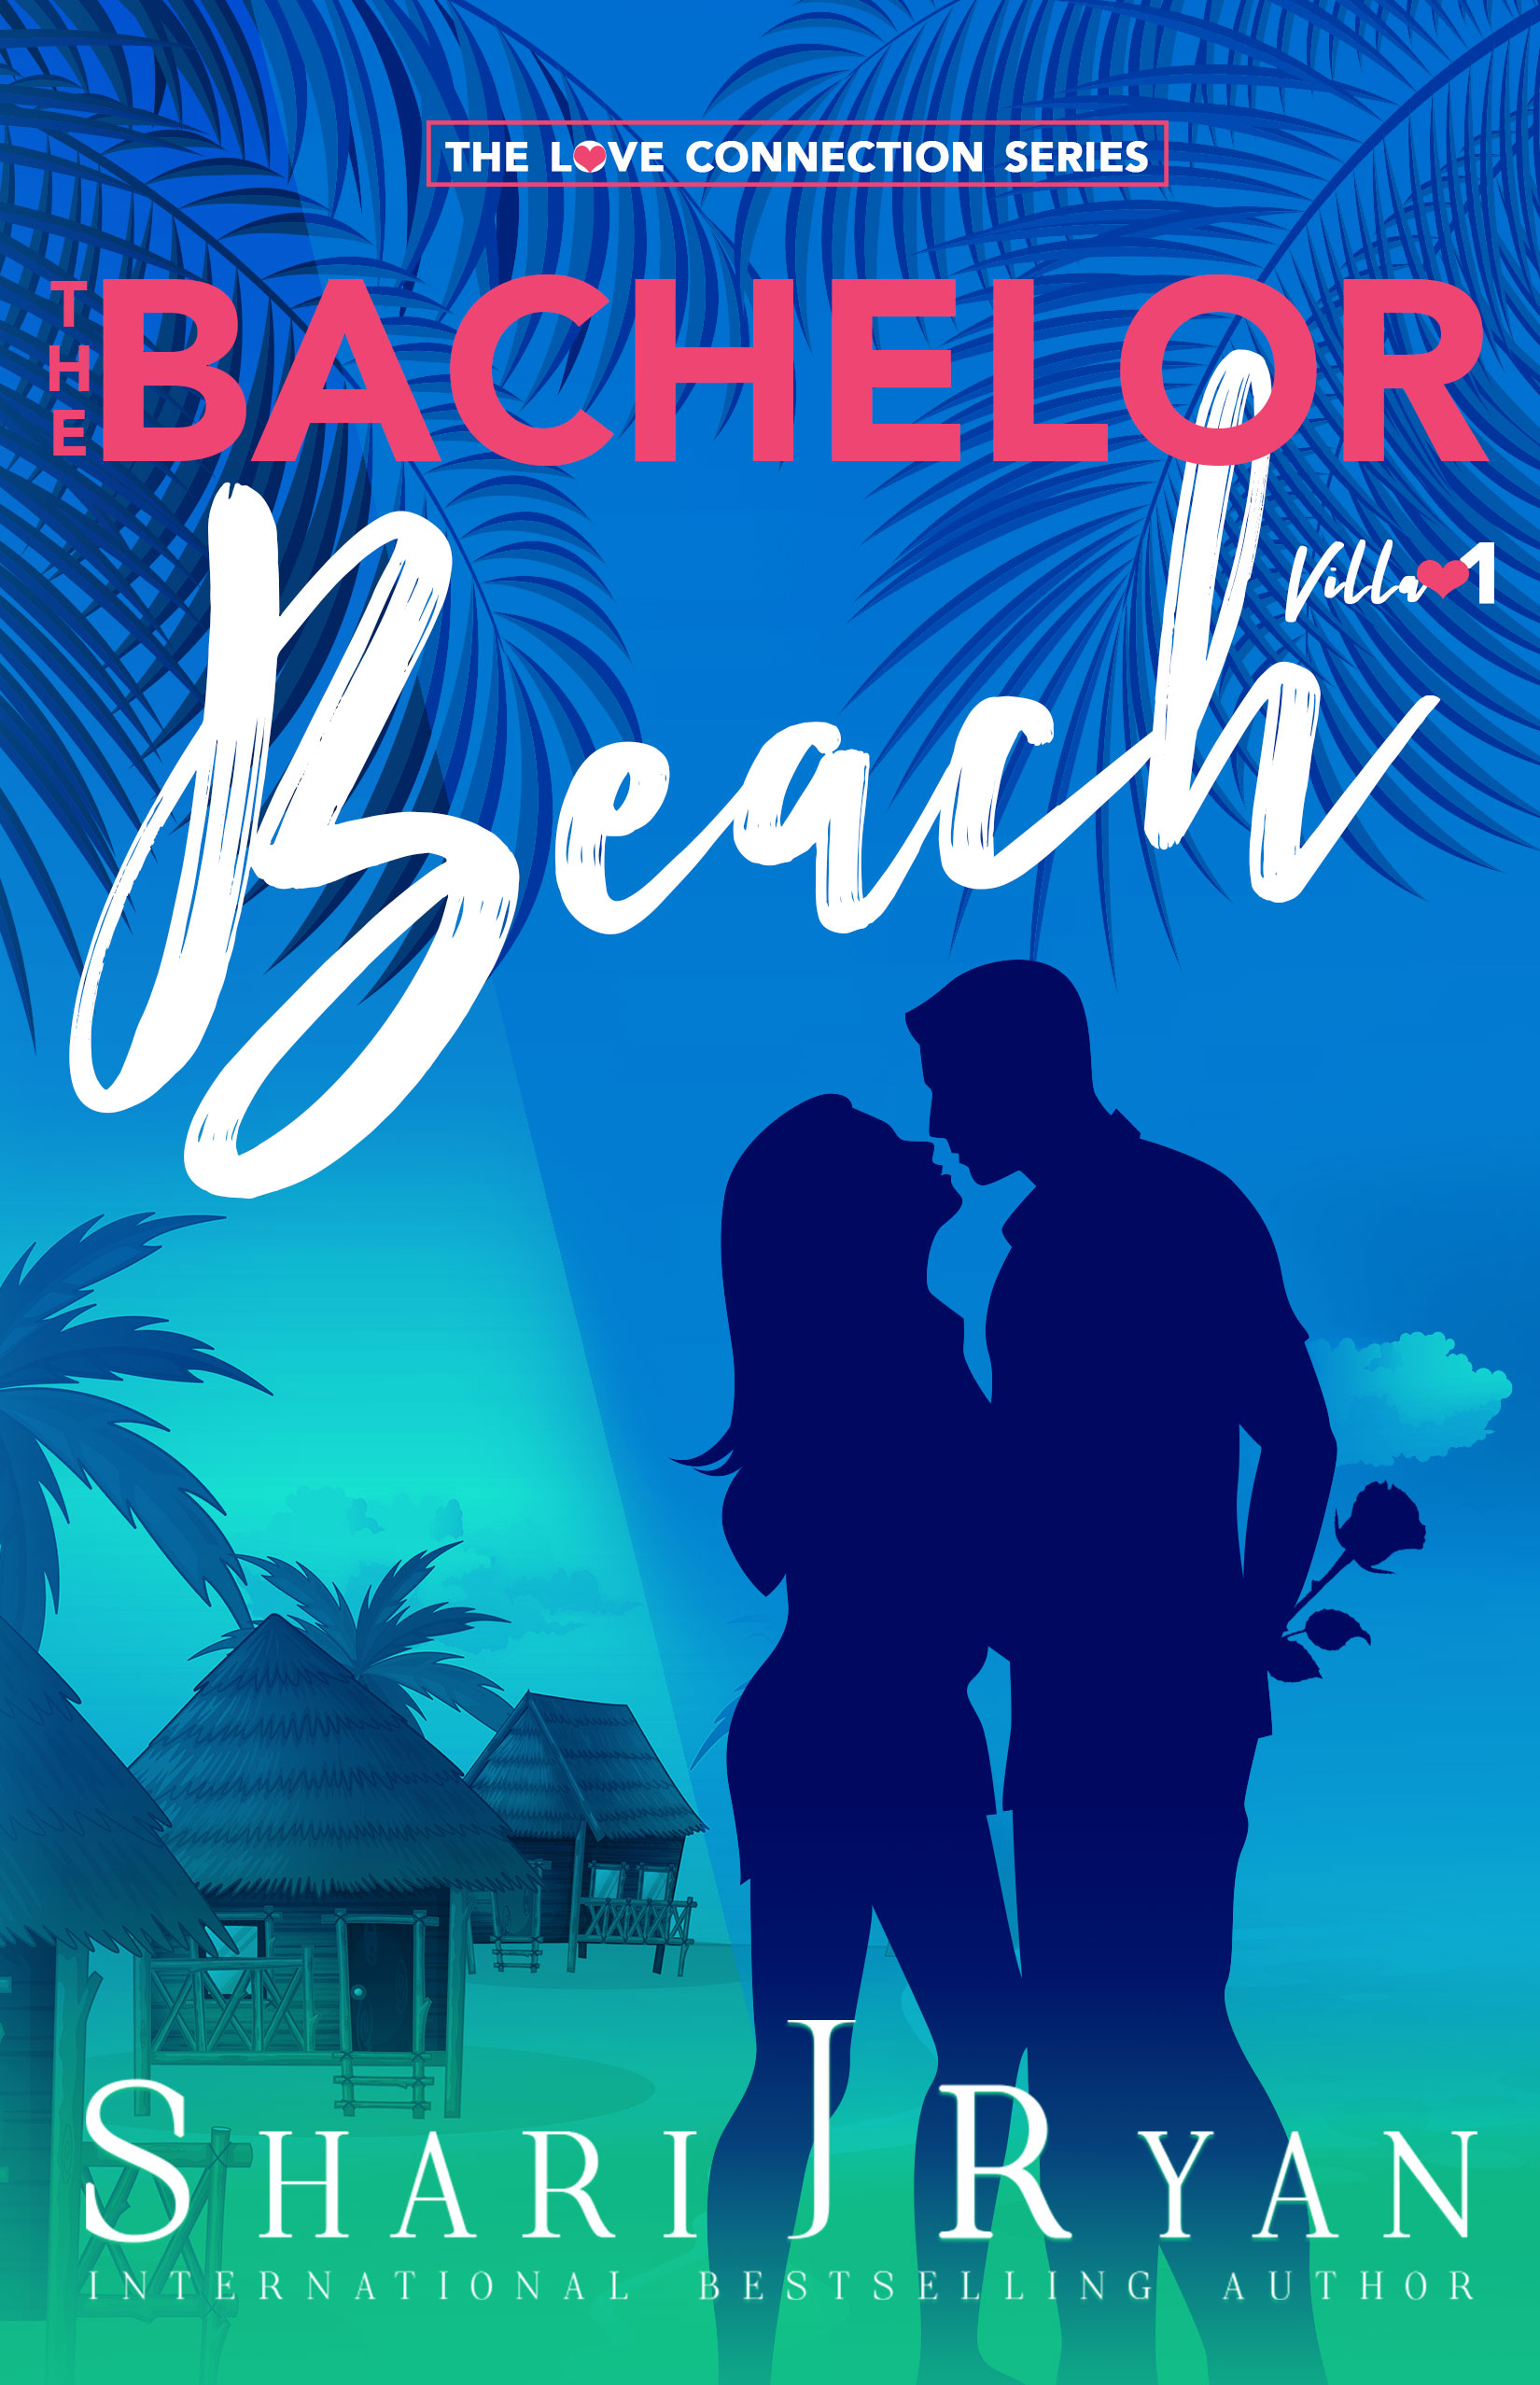 The Bachelor Beach - The Love Connection Series - Romantic ComedyCOMING JULY 15th! PREORDER NOW!